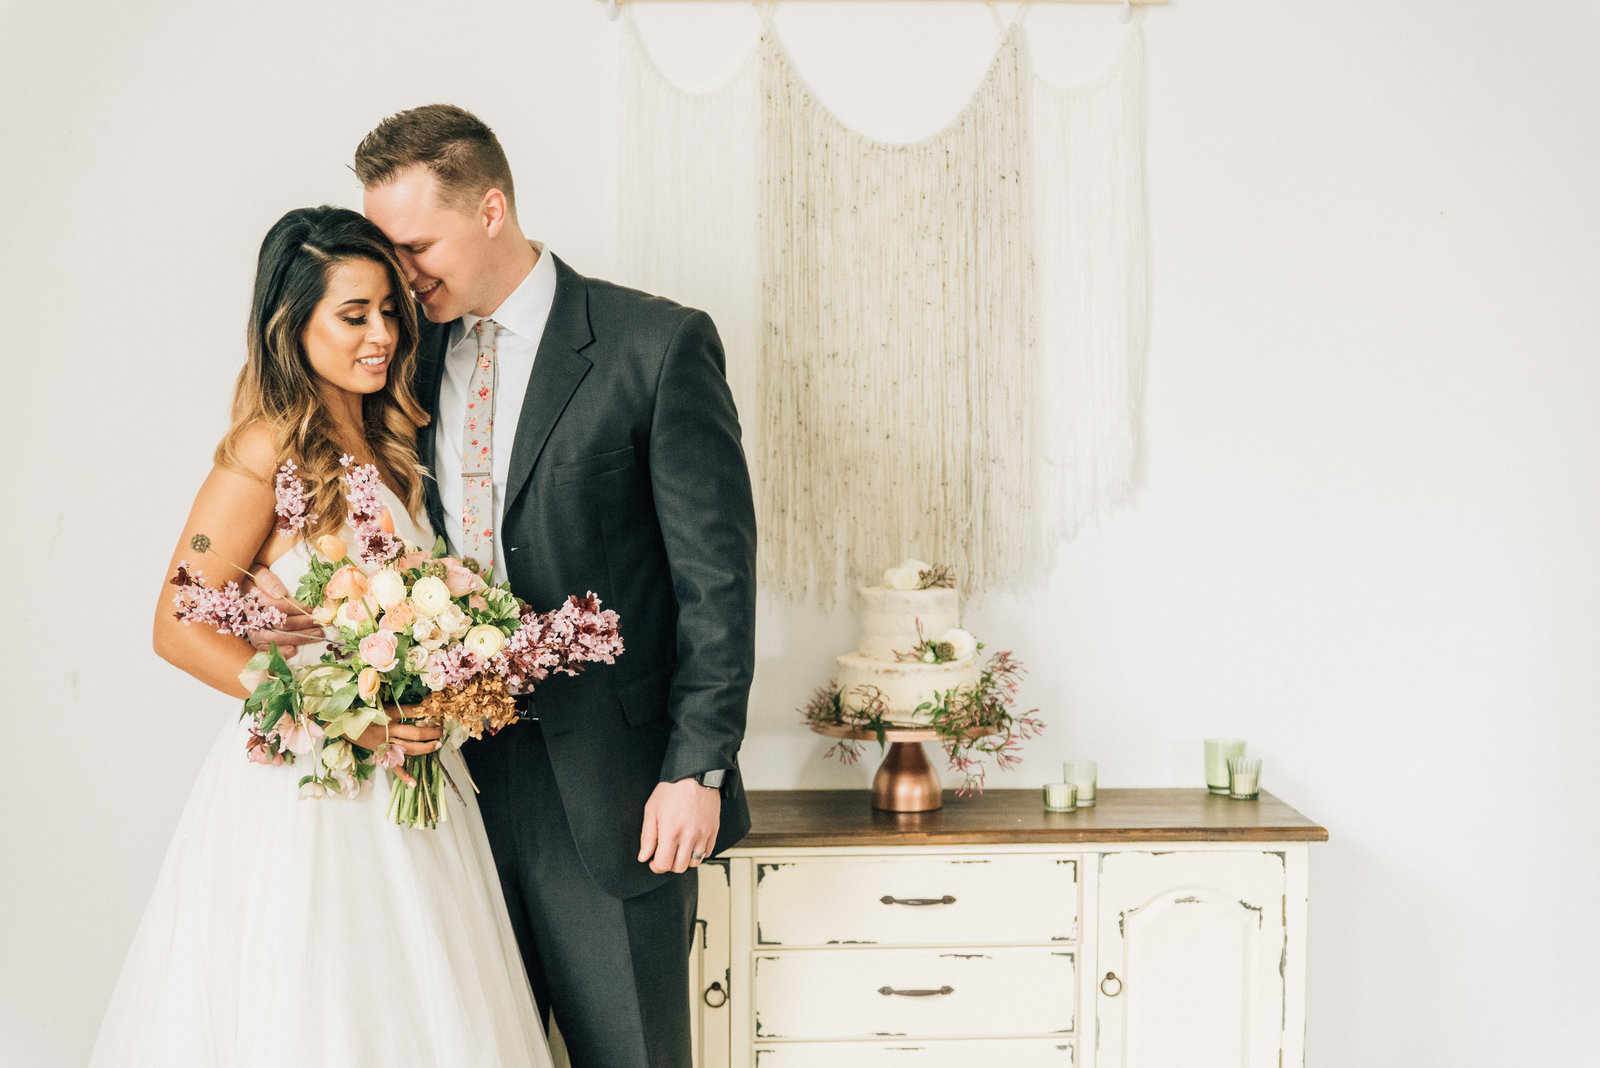 spring+styled+wedding+inspiration  247